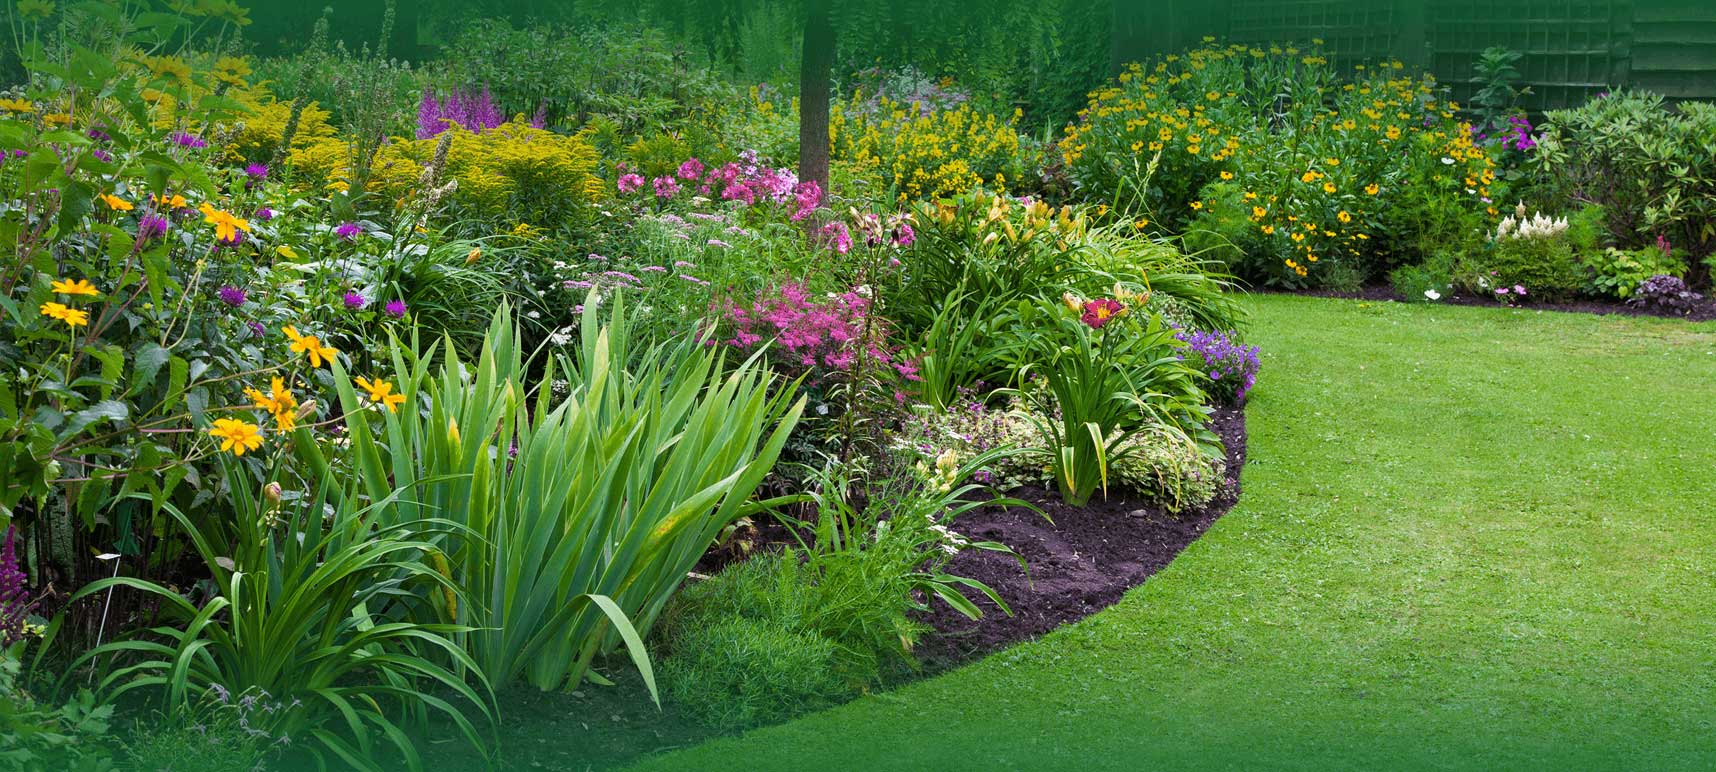 Professional garden and lawn landscaping services in Karachi